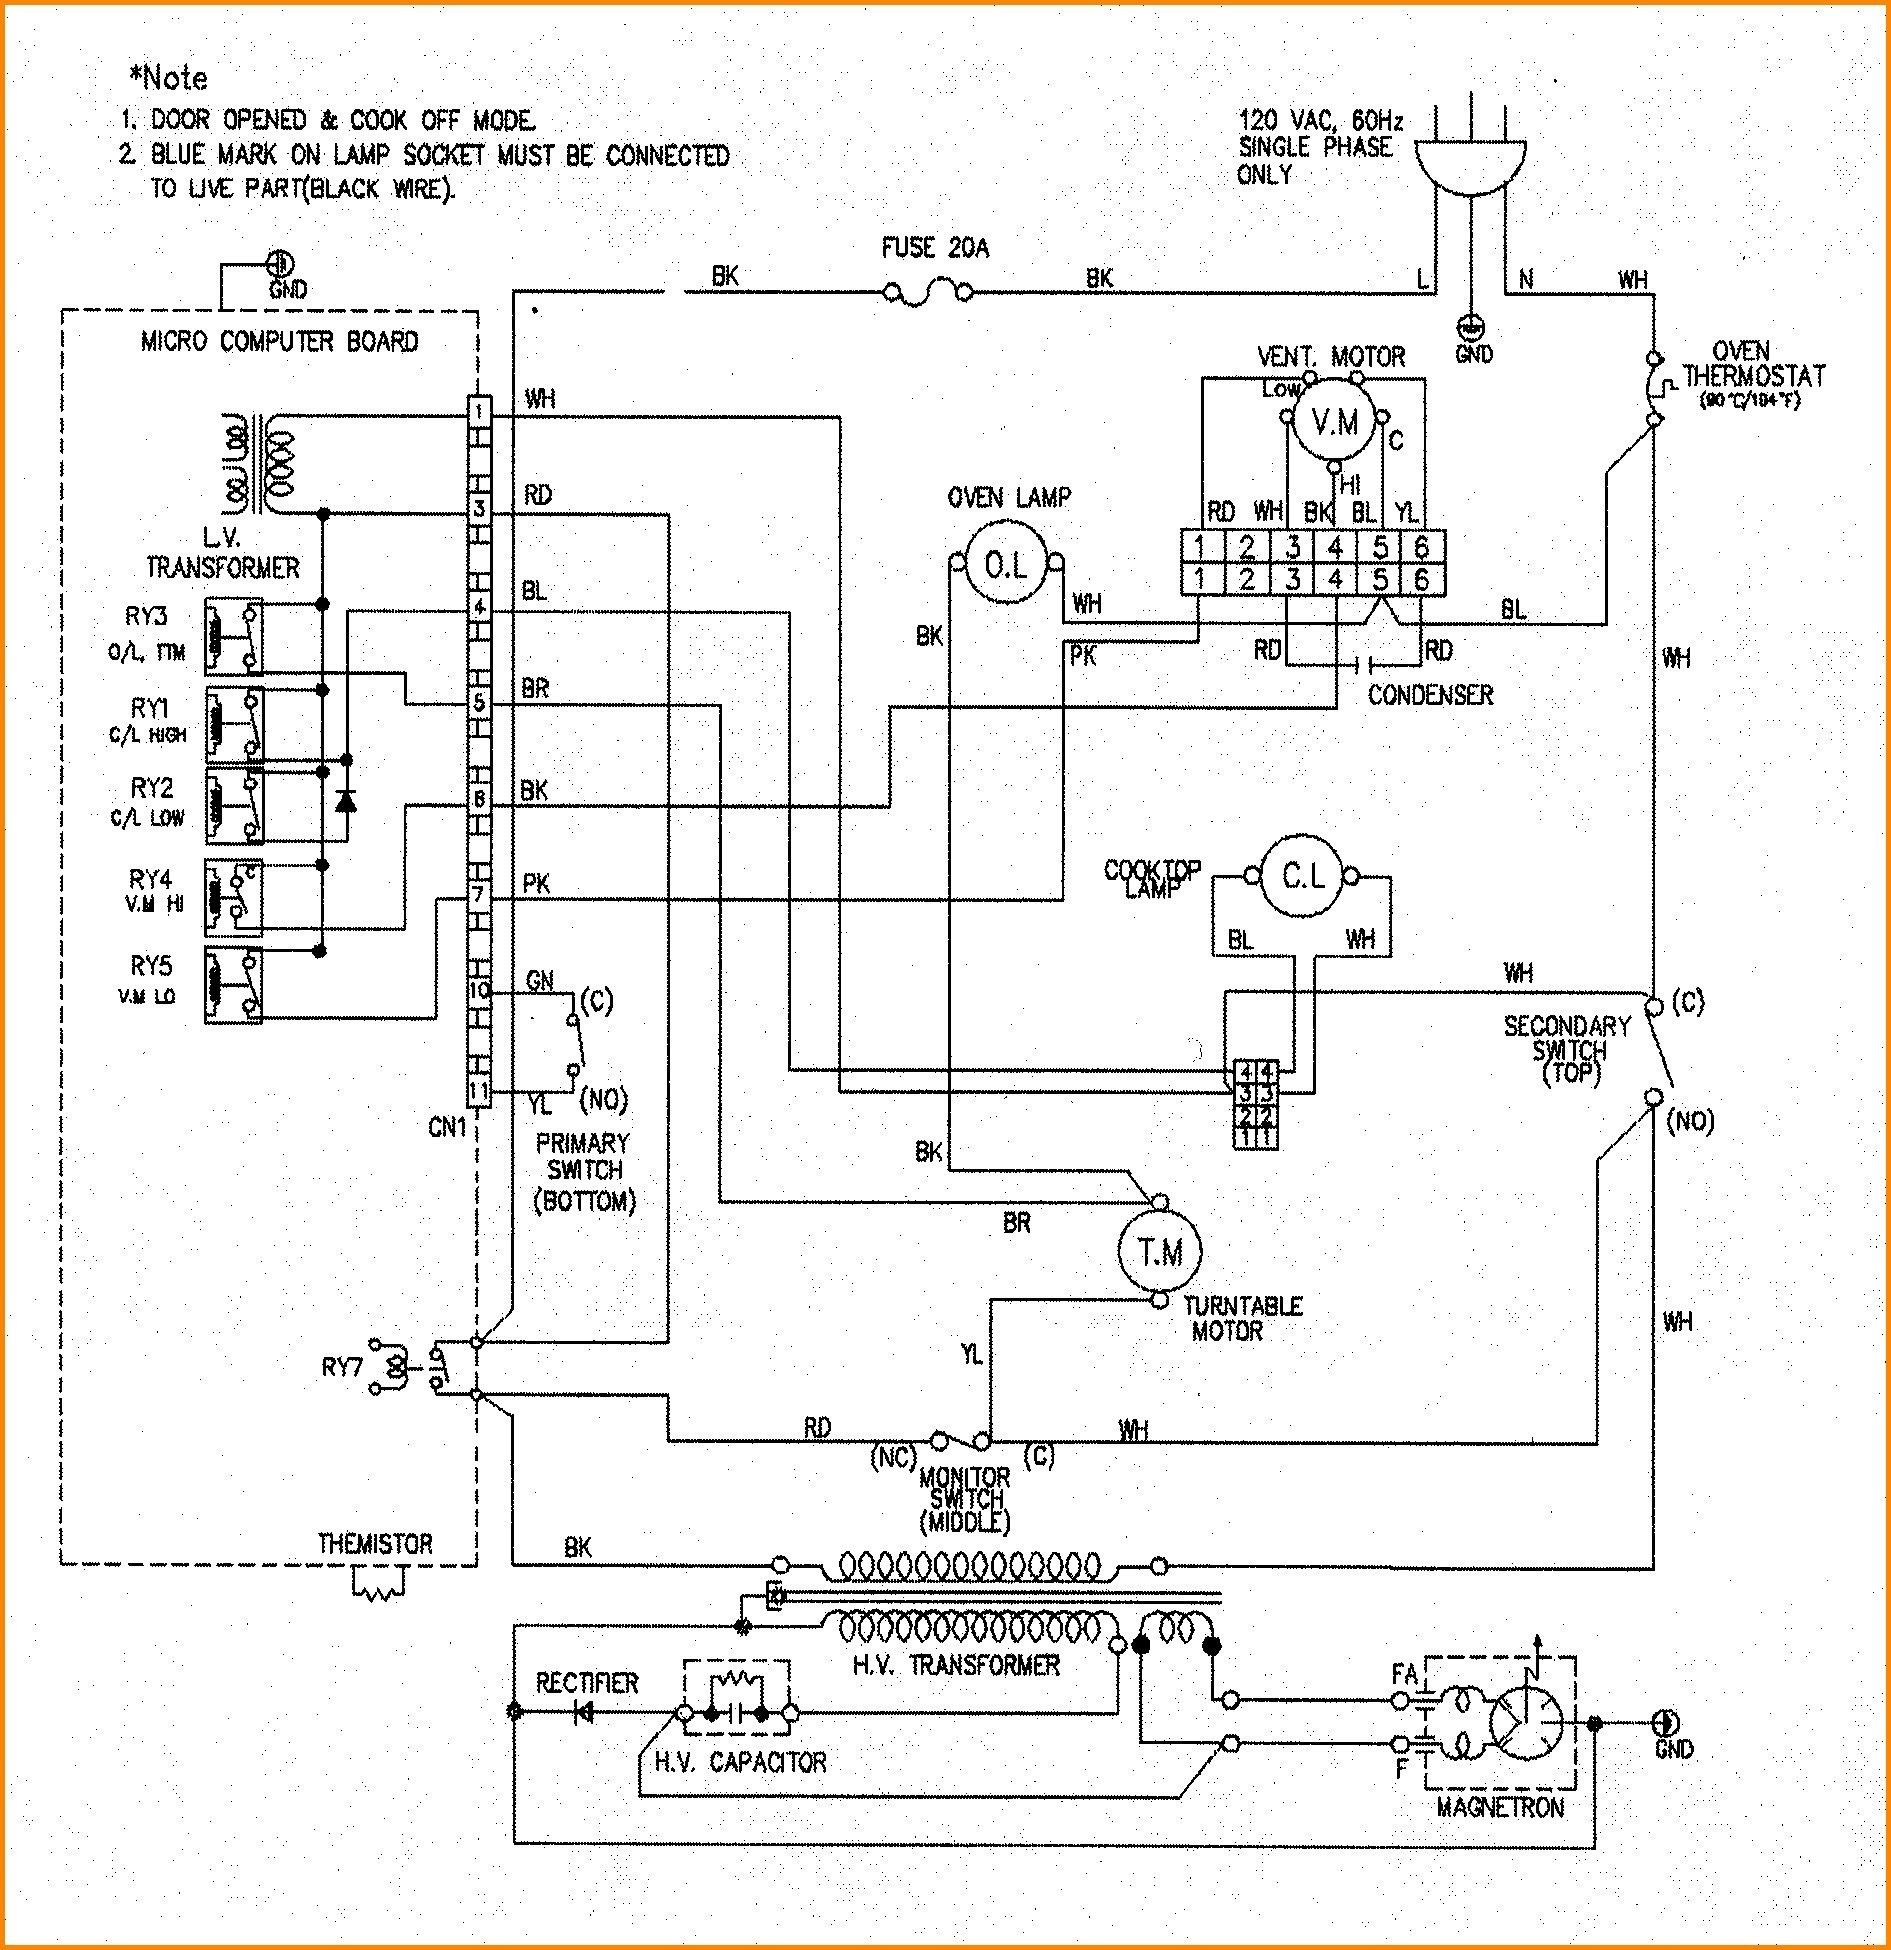 Grand Cherokee Door Wiring Diagram | Wiring Diagram on dodge ram door wiring diagram, jeep heater diagram, mitsubishi eclipse door wiring diagram, mazda tribute door wiring diagram, ford fusion door wiring diagram, ford ranger door wiring diagram, jeep stereo wiring diagram, buick lucerne door wiring diagram, jeep cherokee door lock diagram,